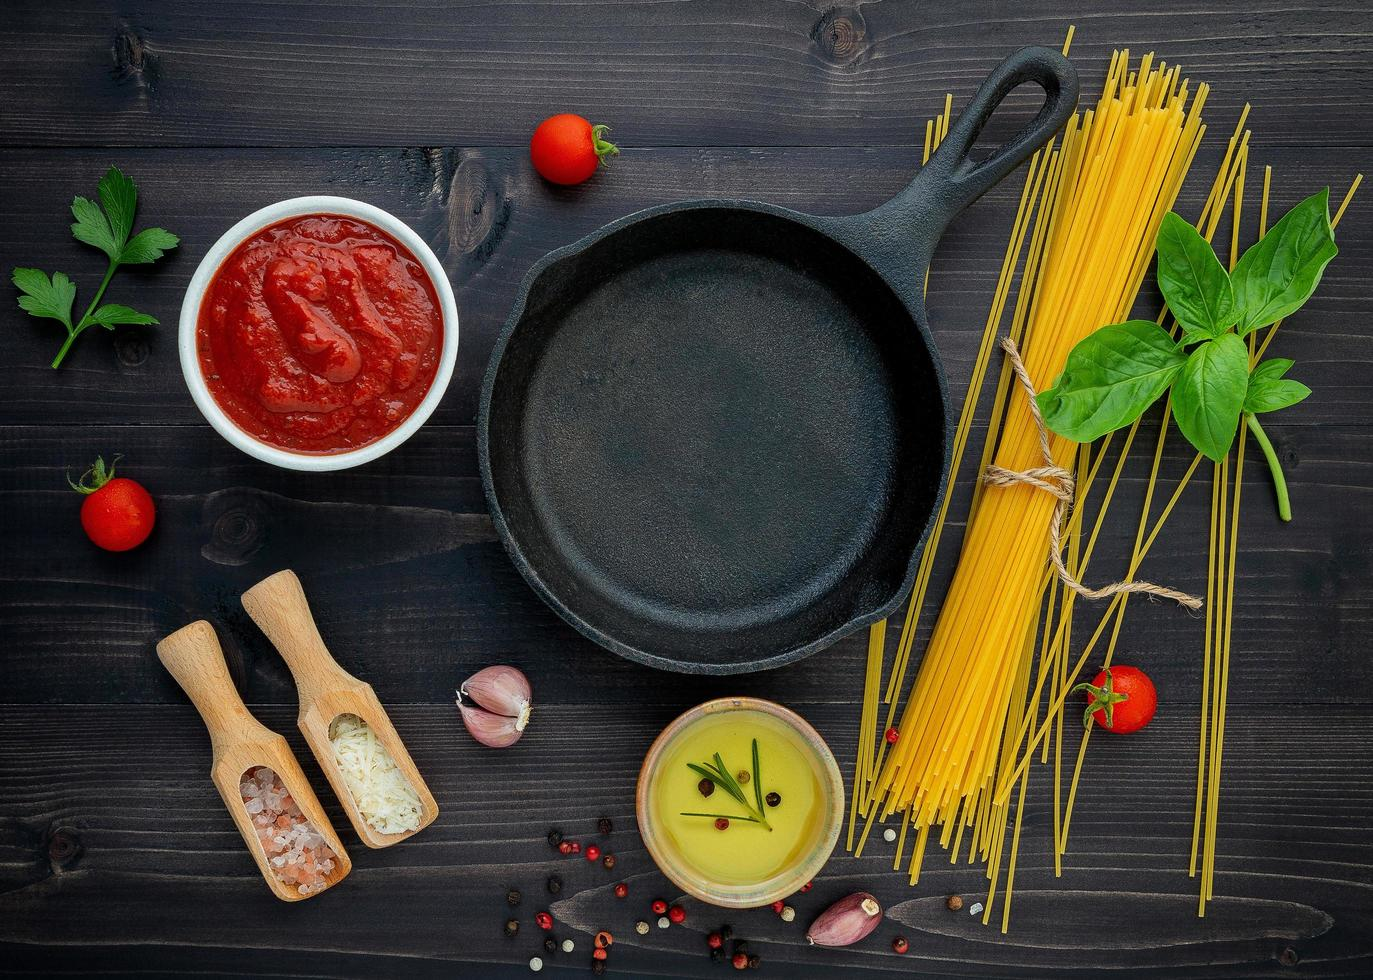 Frying pan and fresh spaghetti ingredients photo